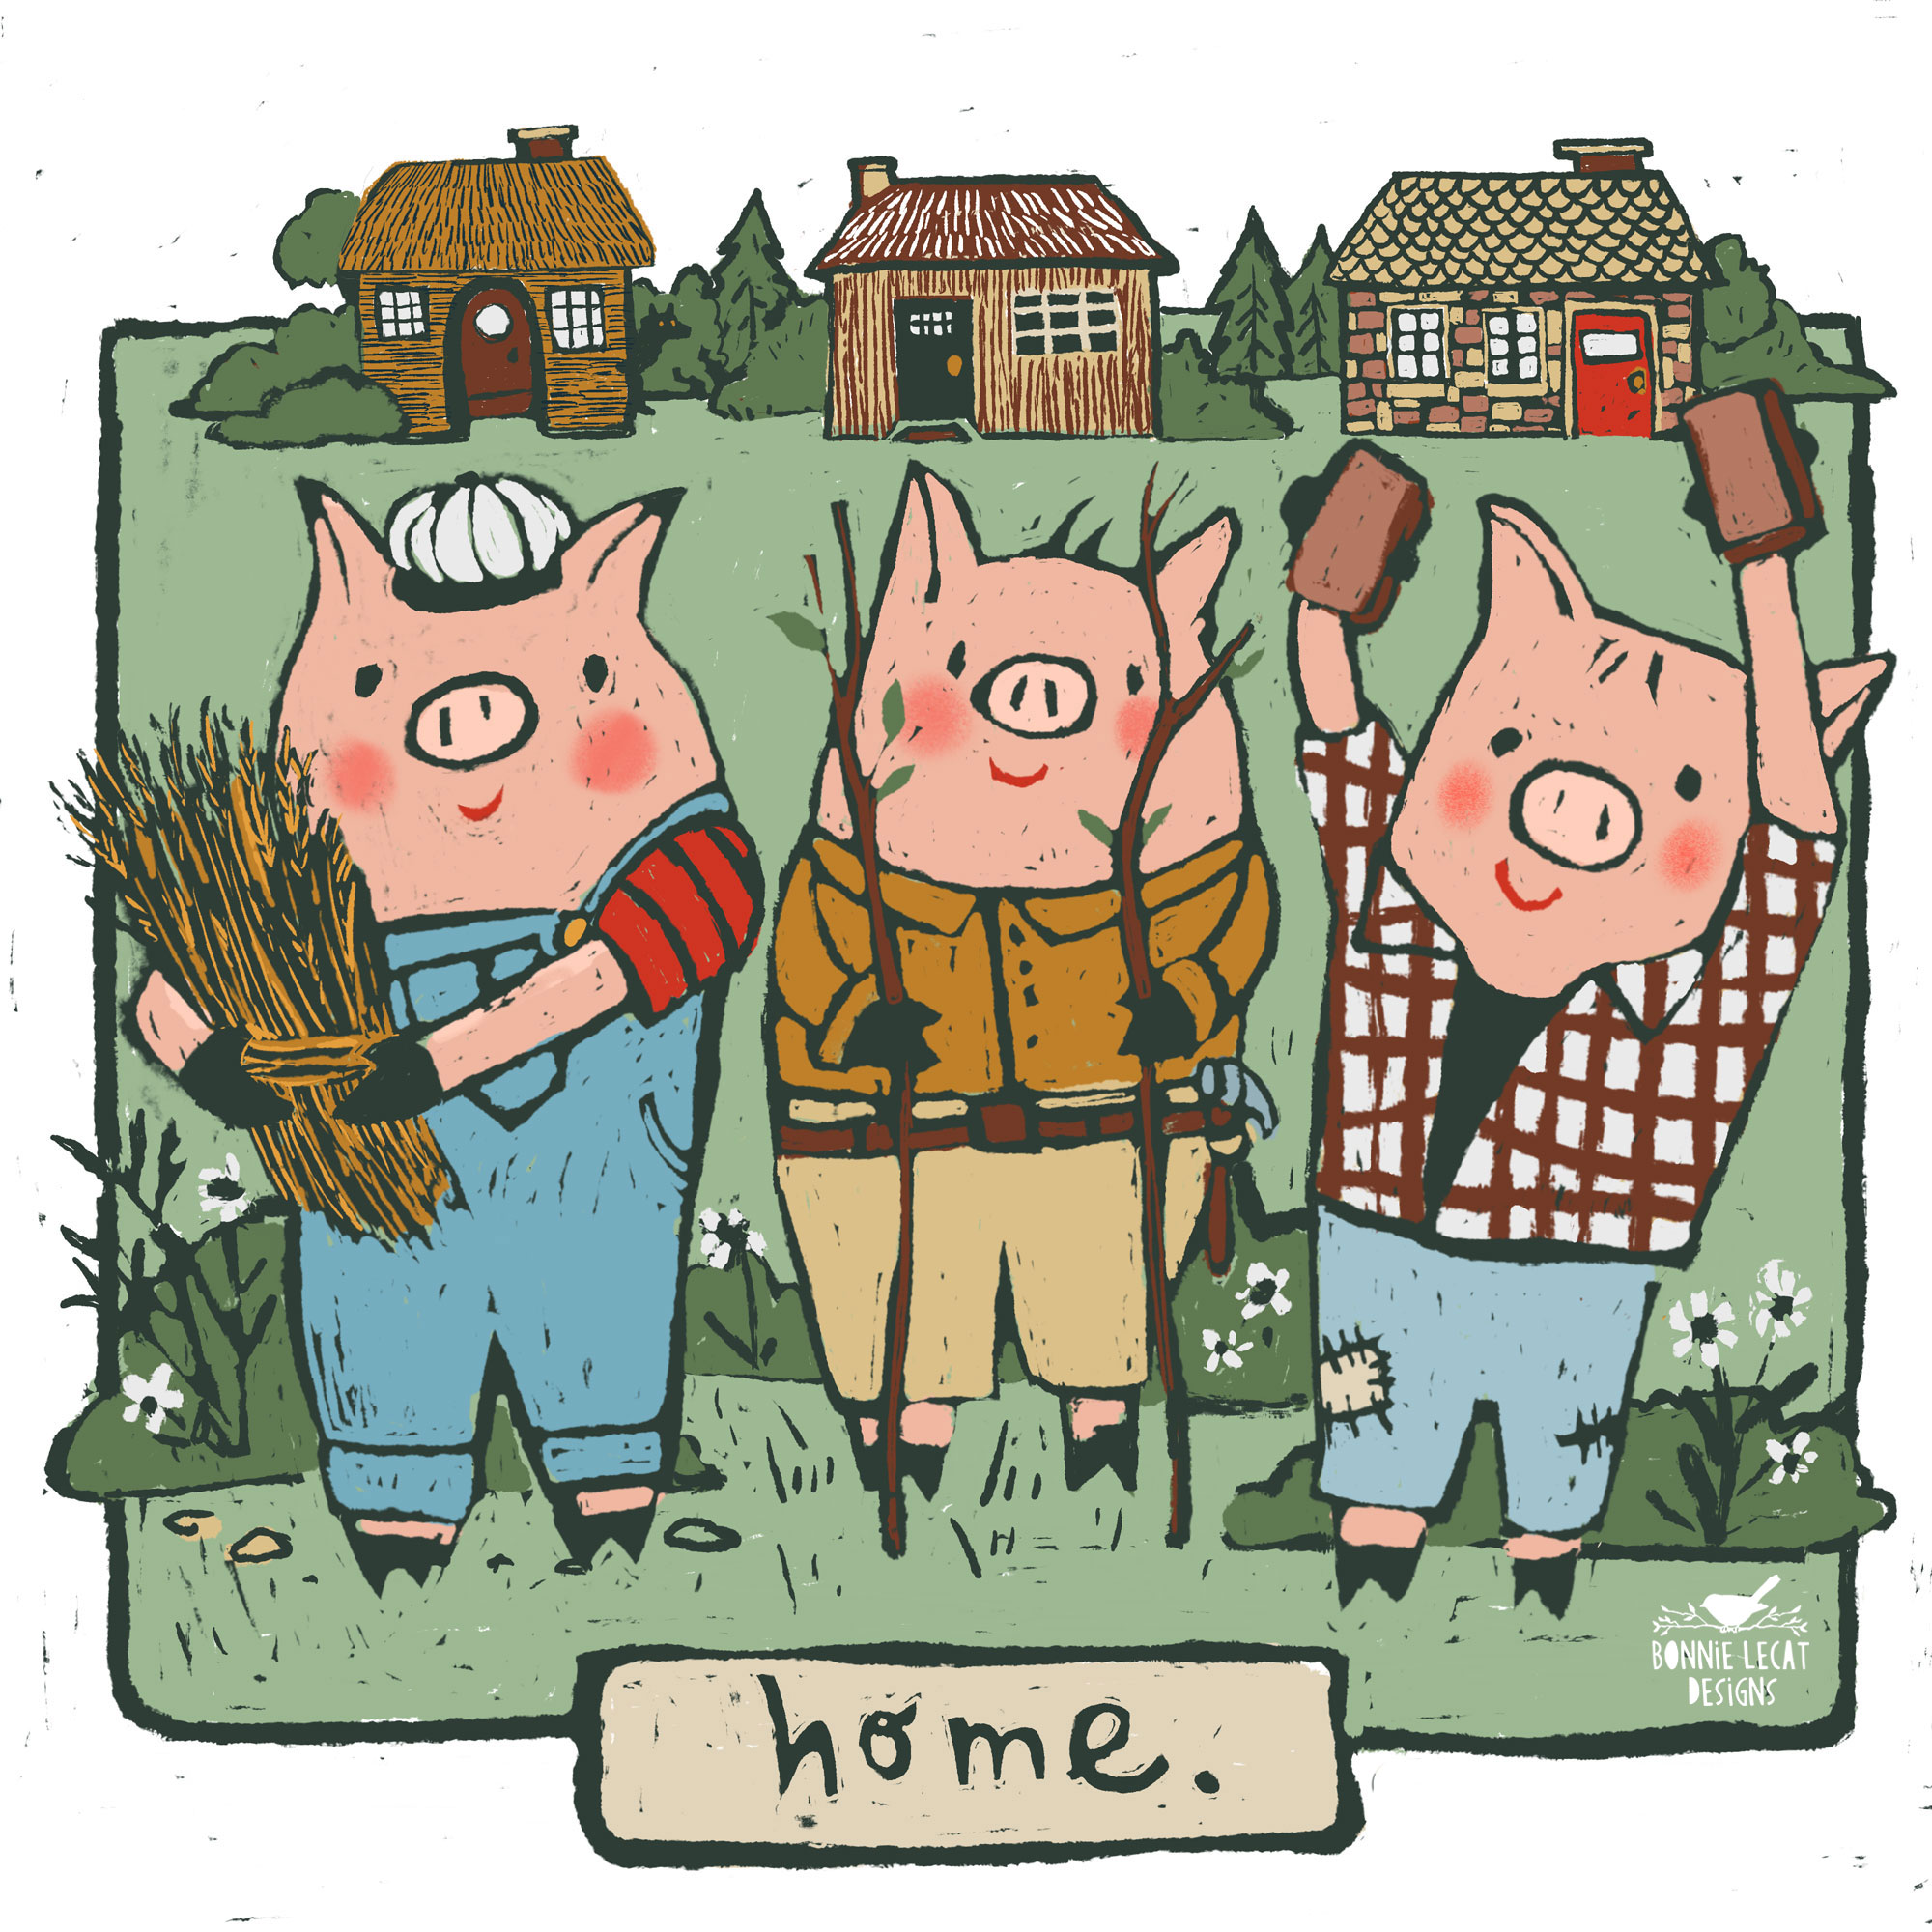 Three Little Pigs illustration by Bonnie Lecat